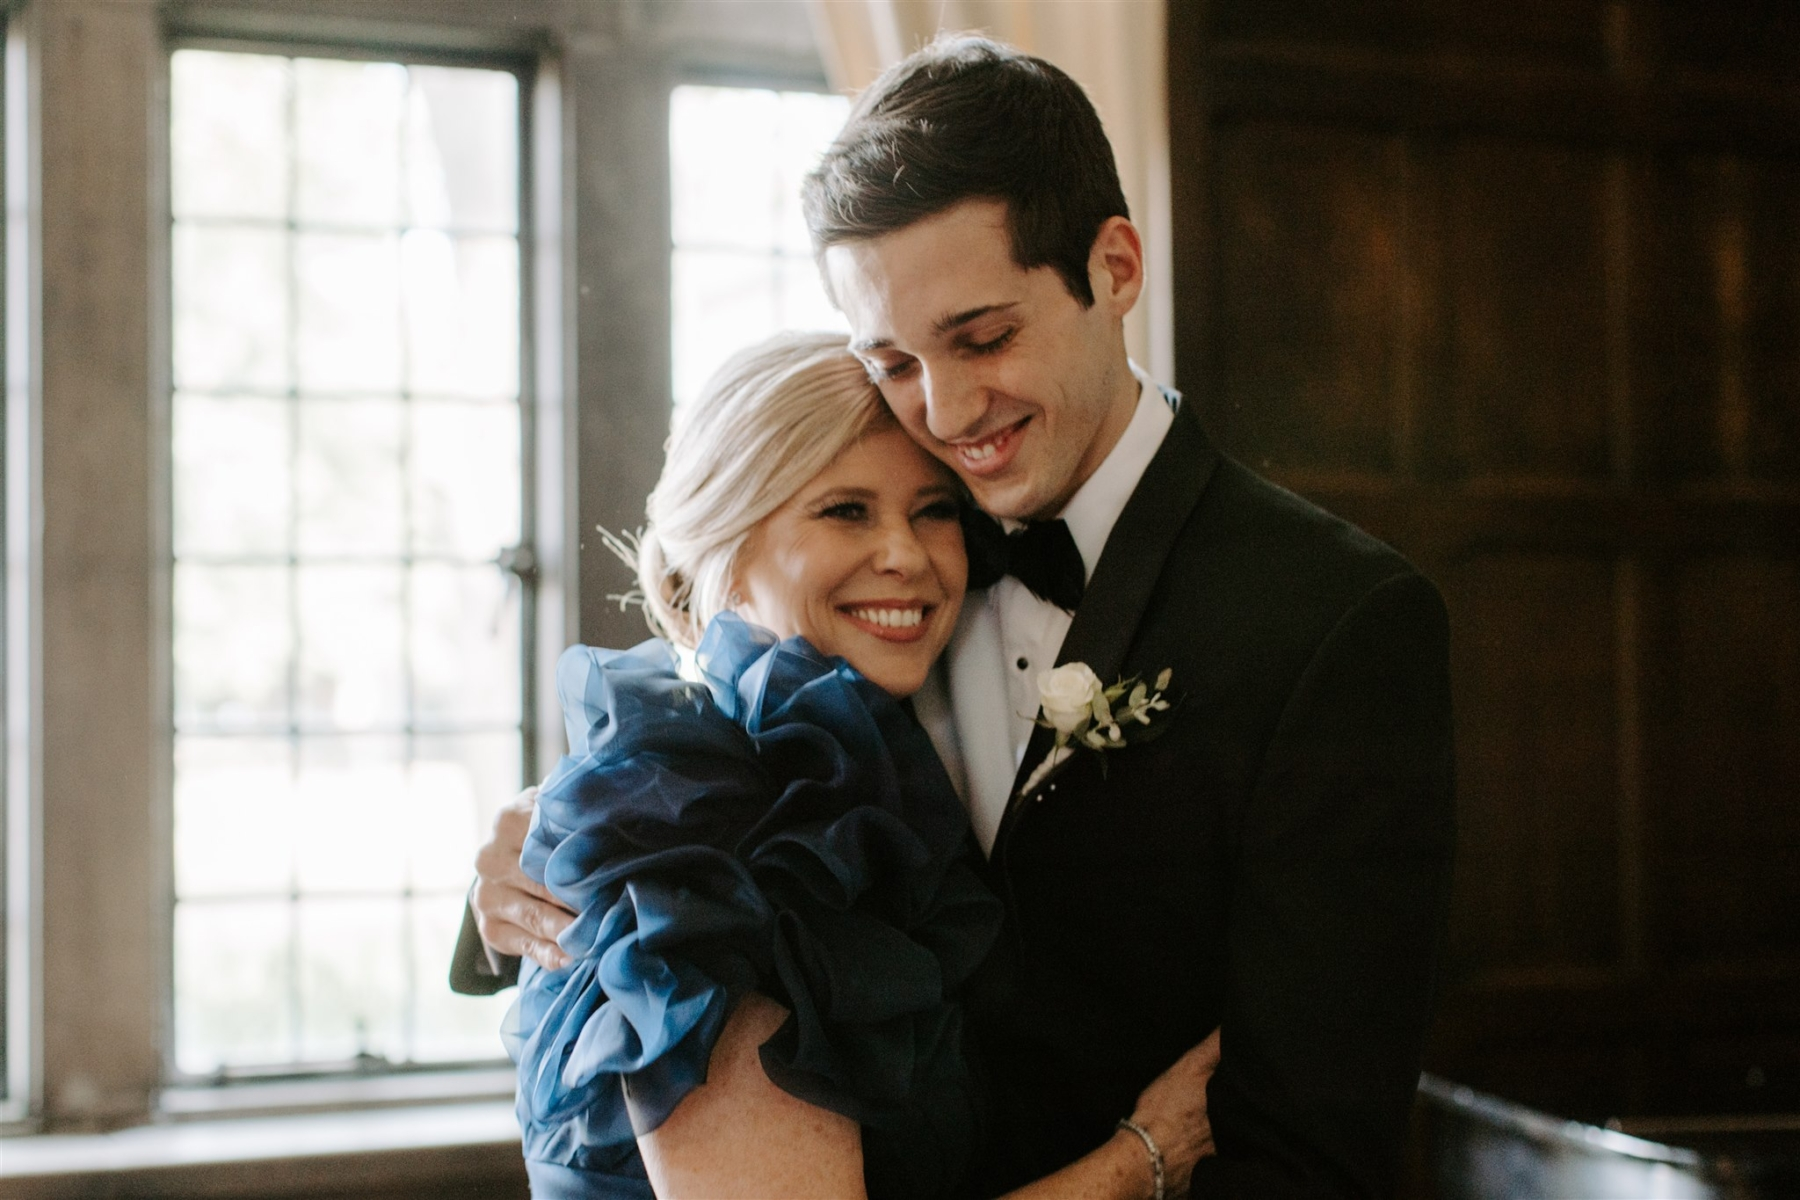 Mother of the groom hugging son